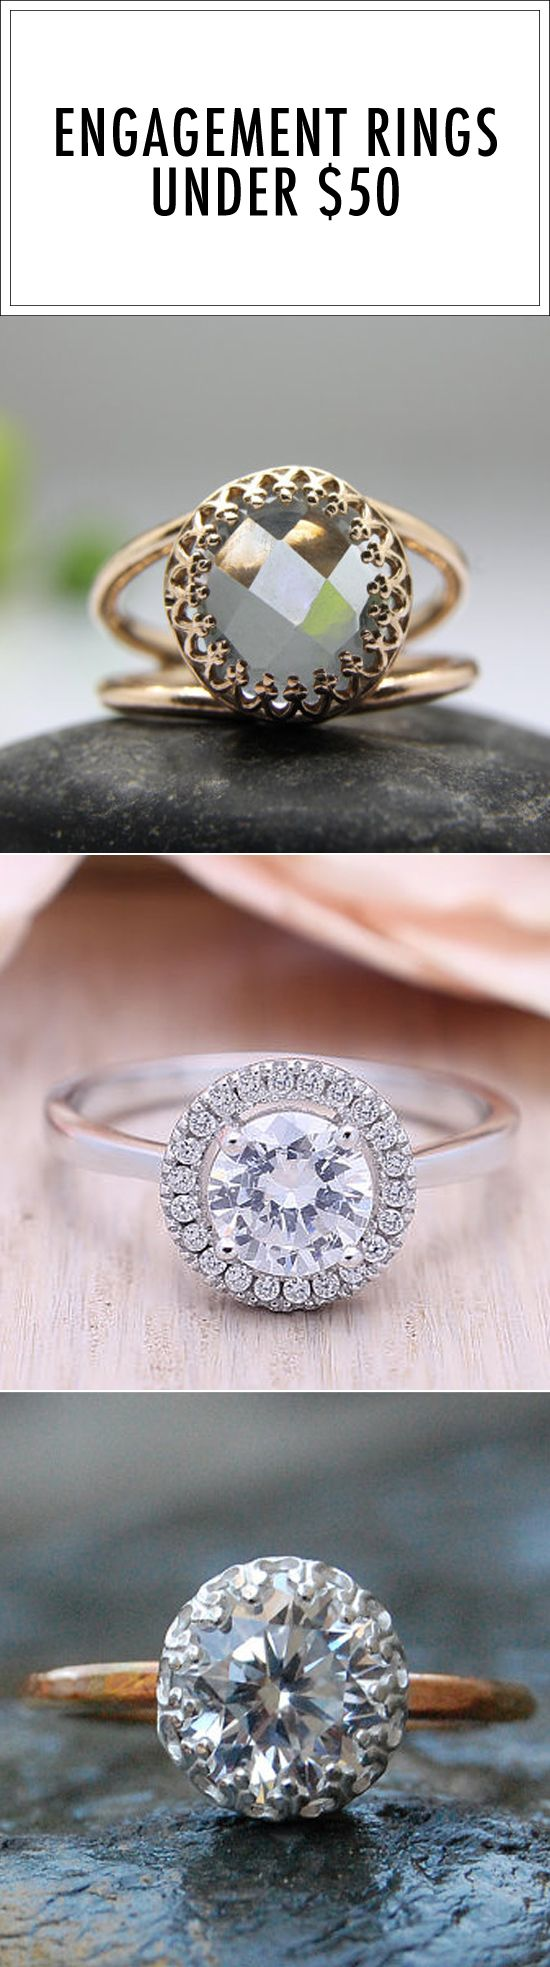 26 Stunning Engagement Rings That Cost Under 50